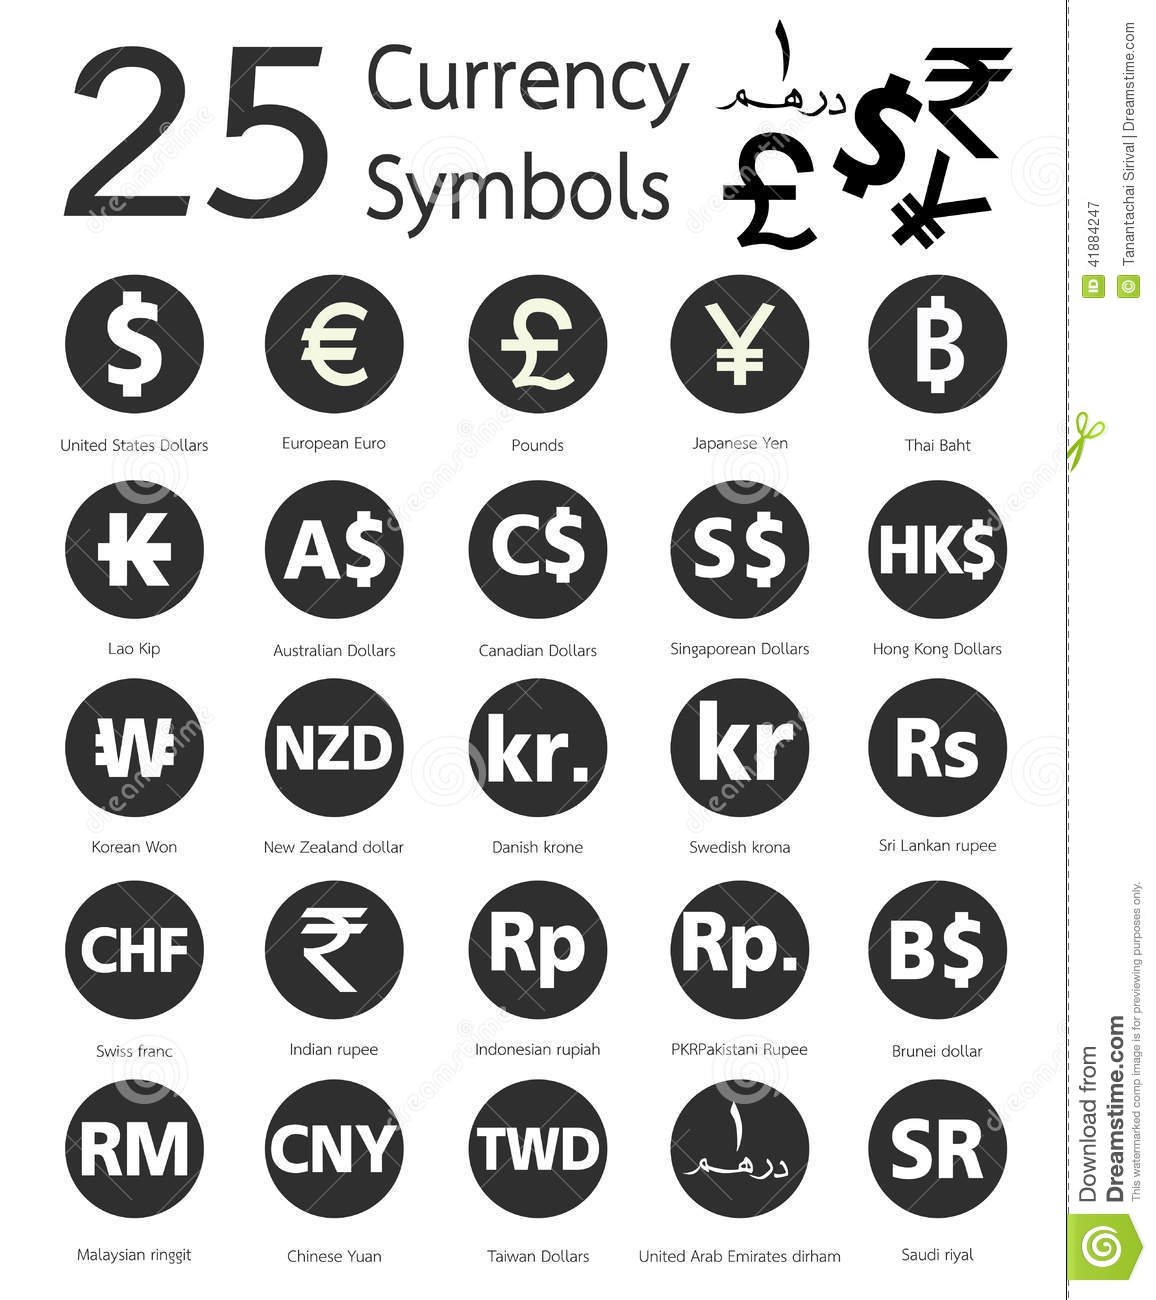 25 Currency Symbols Countries And Their Name Around The